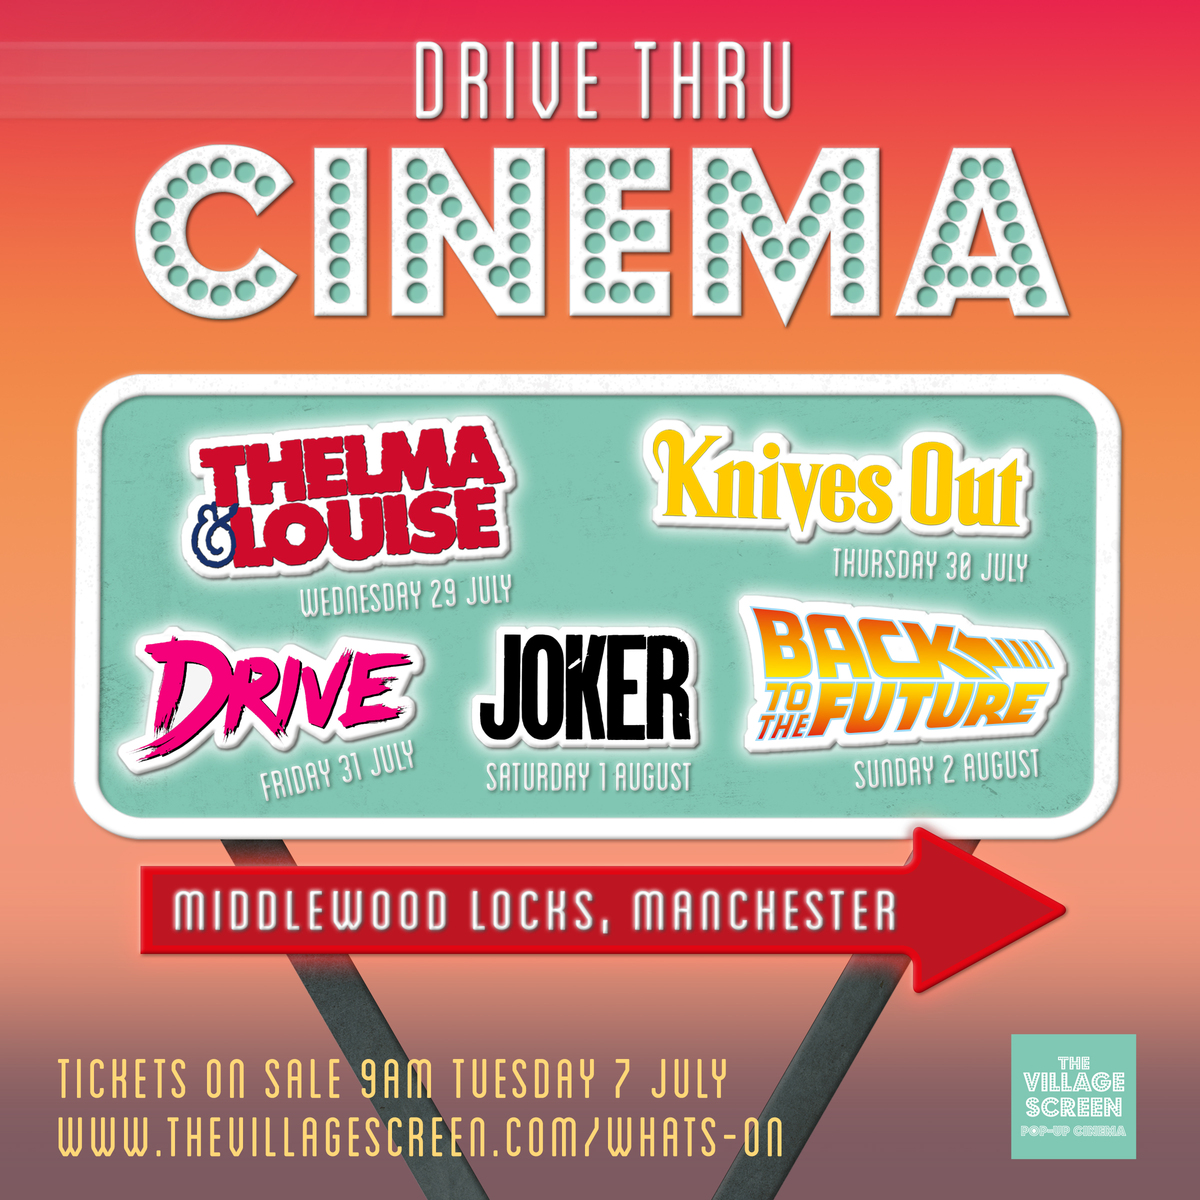 A drive-thru cinema with food, drink and DJ entertainment is coming to Salford, The Manc